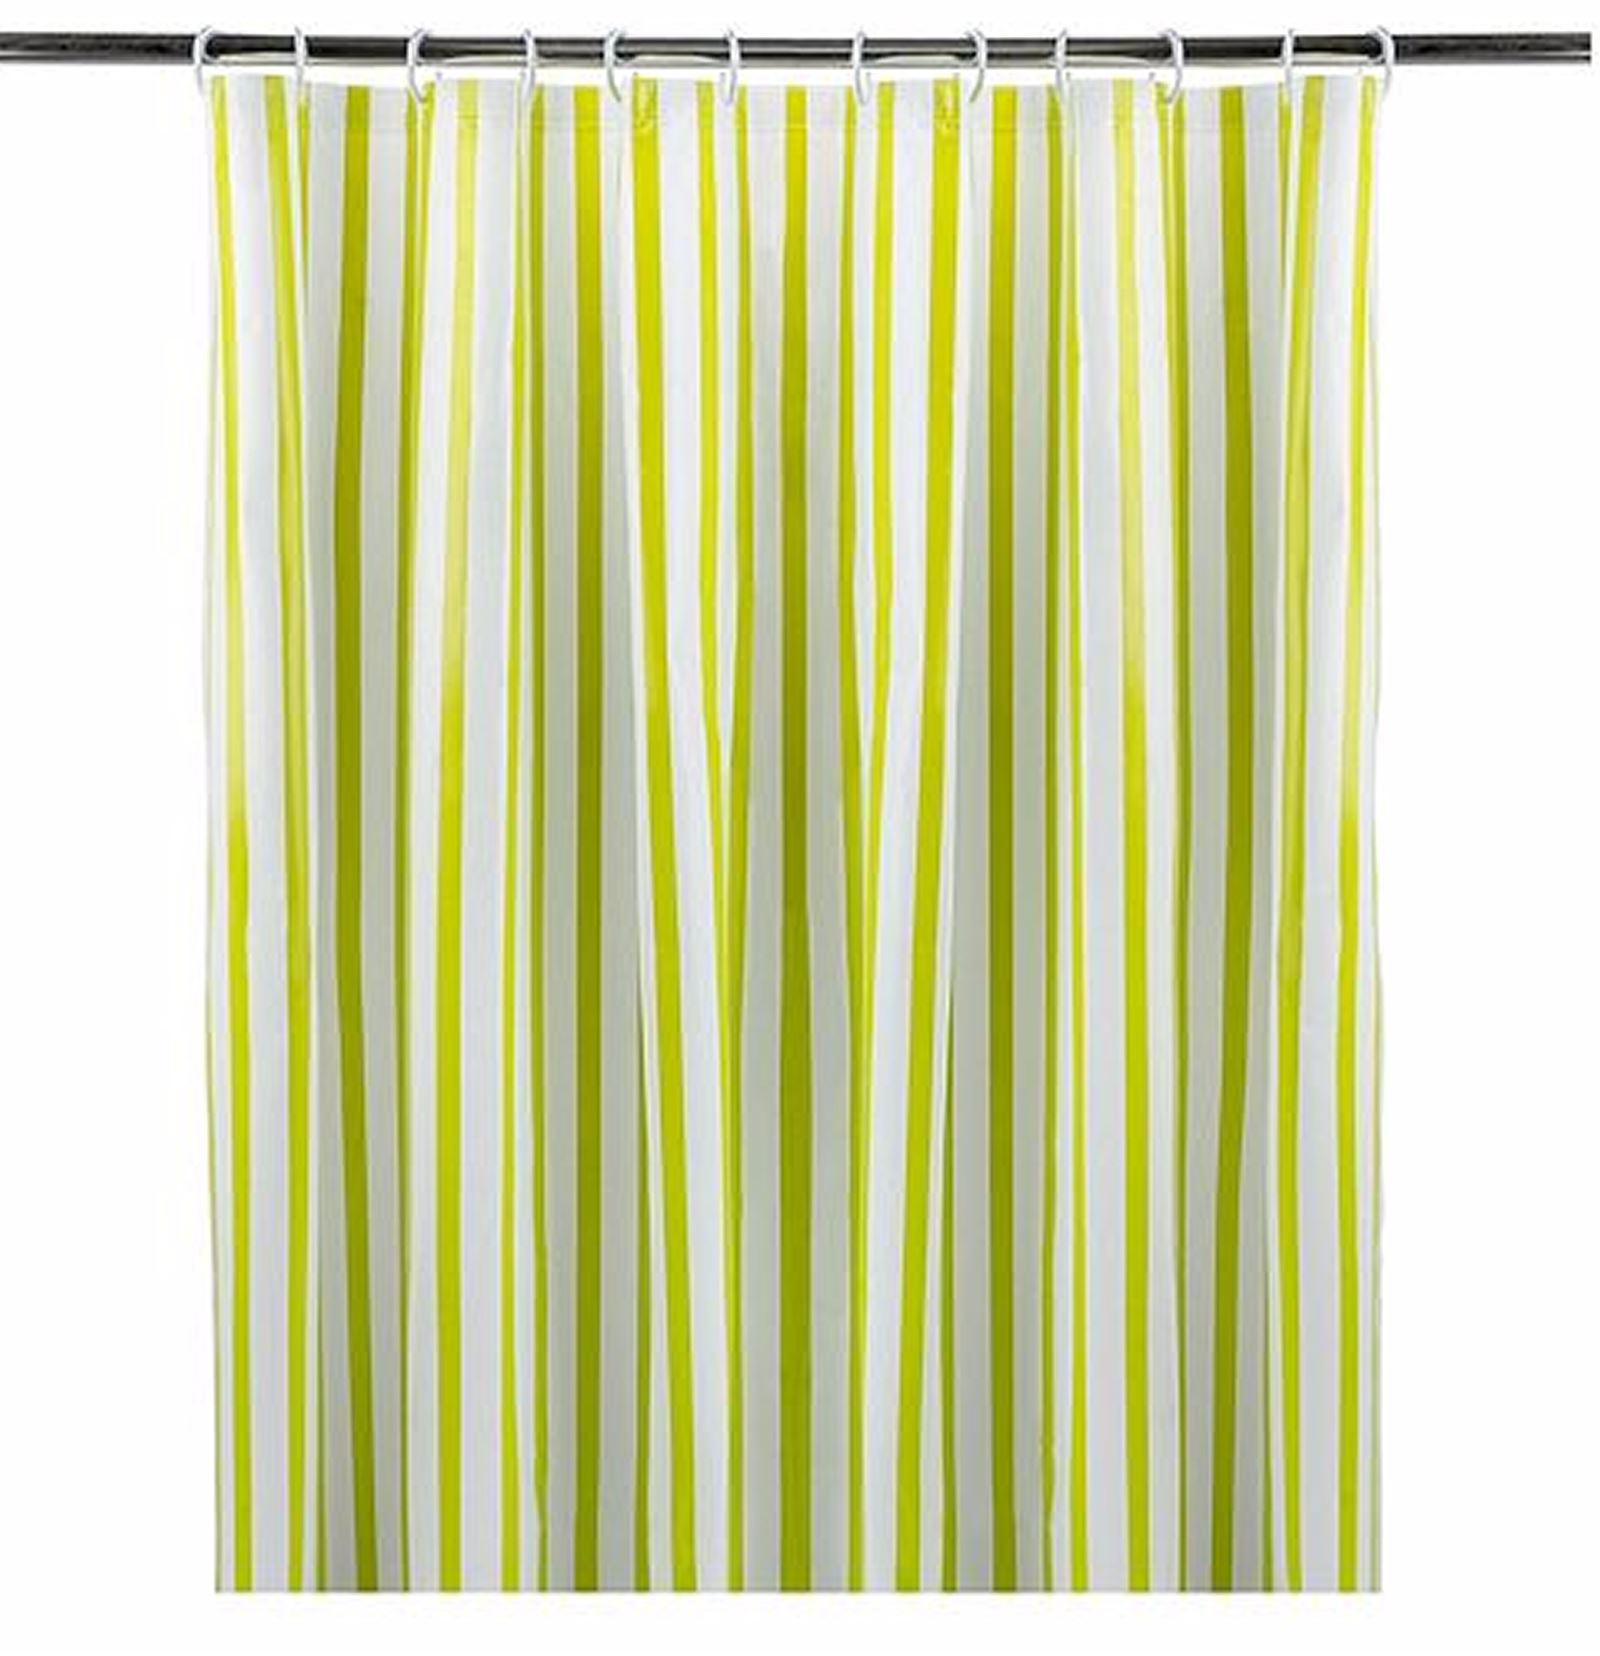 Details About Striped Shower Curtain With Eyelet Ring Top Lime Green 180x180cm